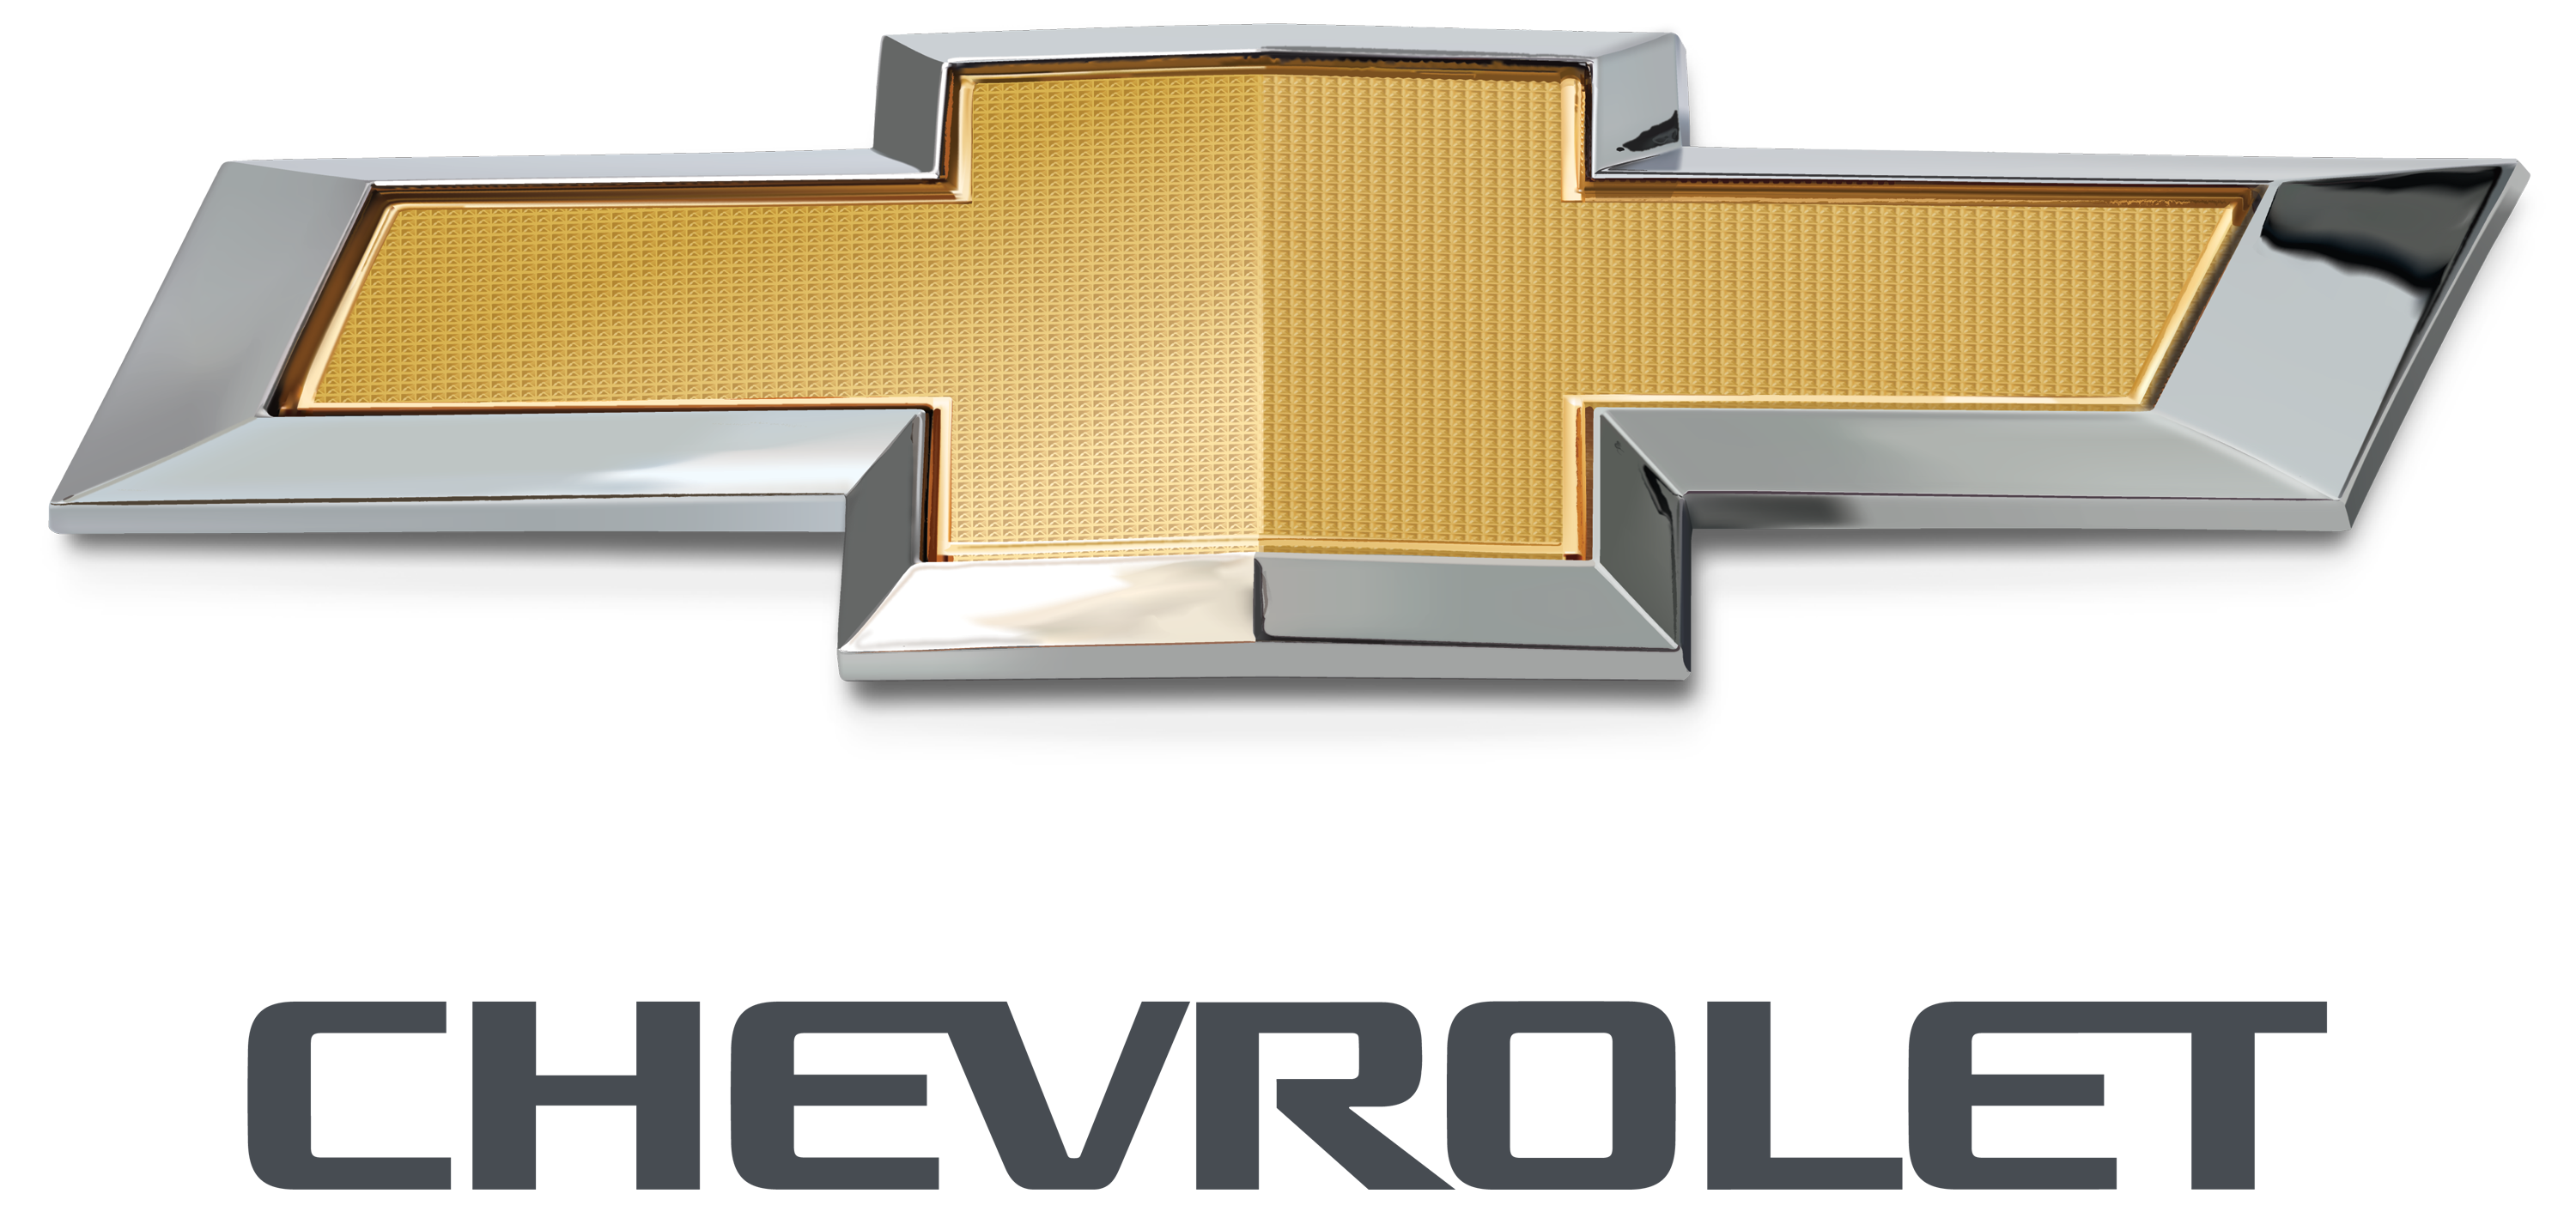 Chevy find new roads logo png. Used suvs near me